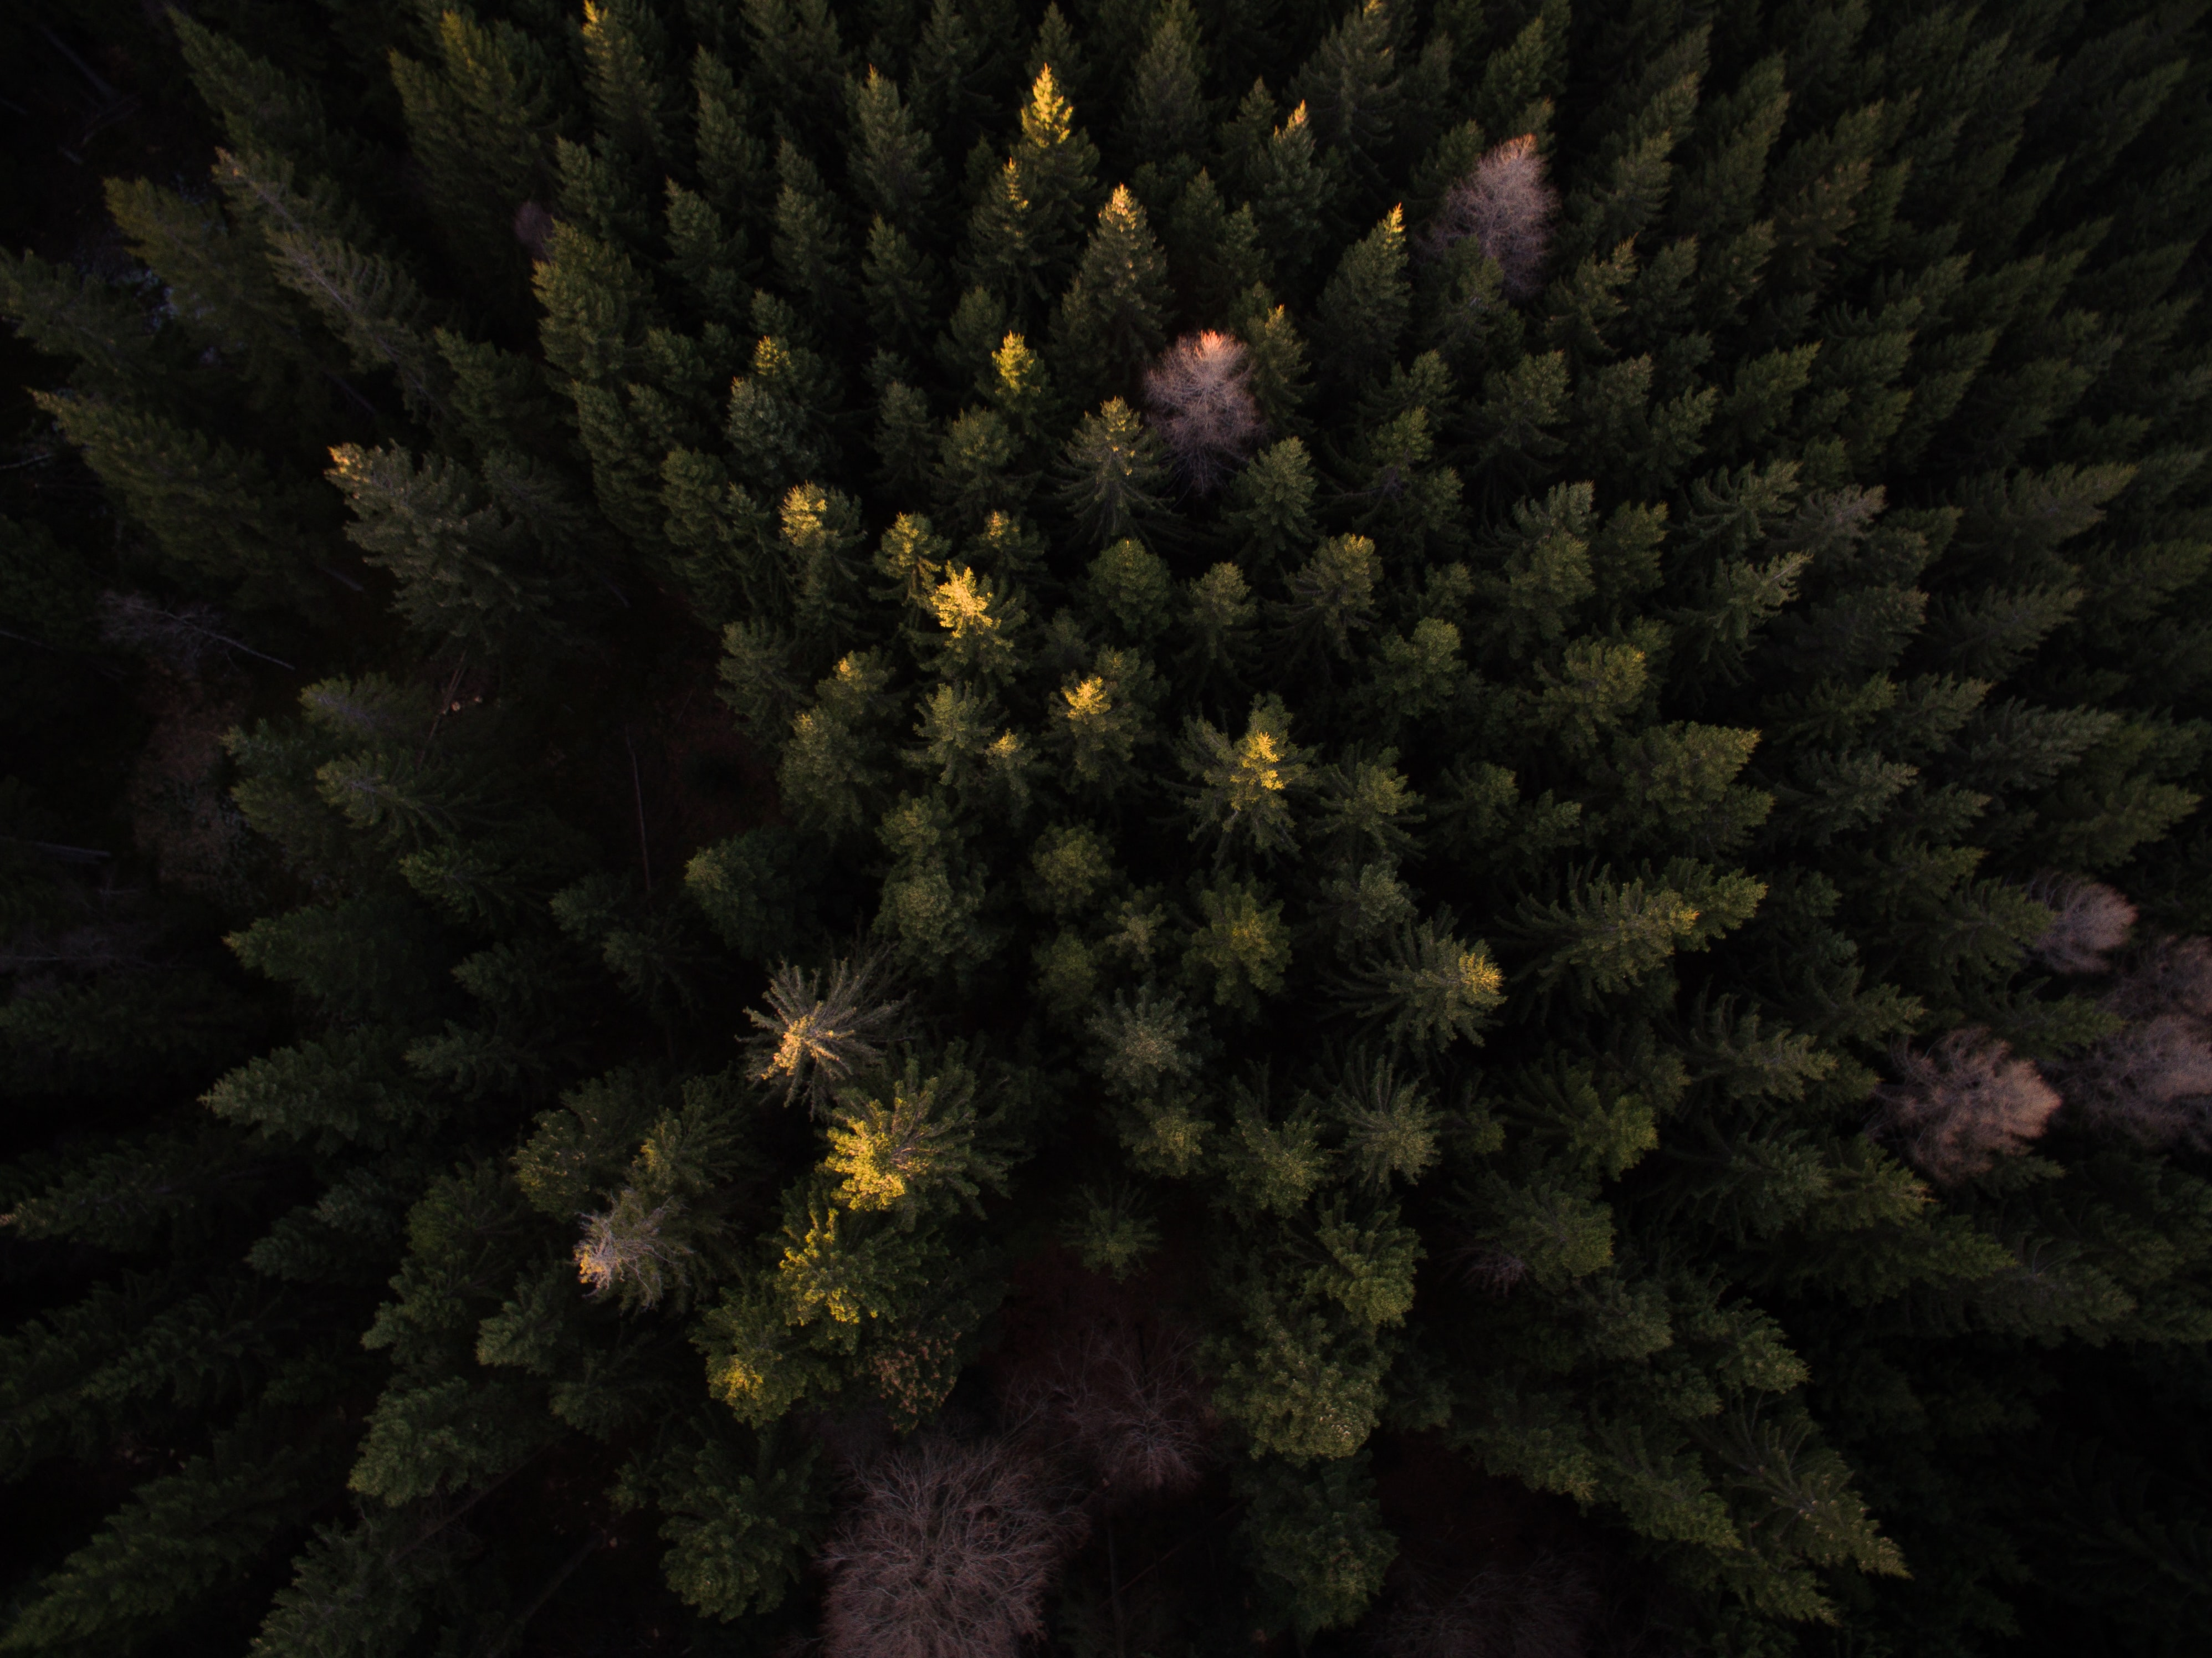 A drone shot of an evergreen forest with several dead trees